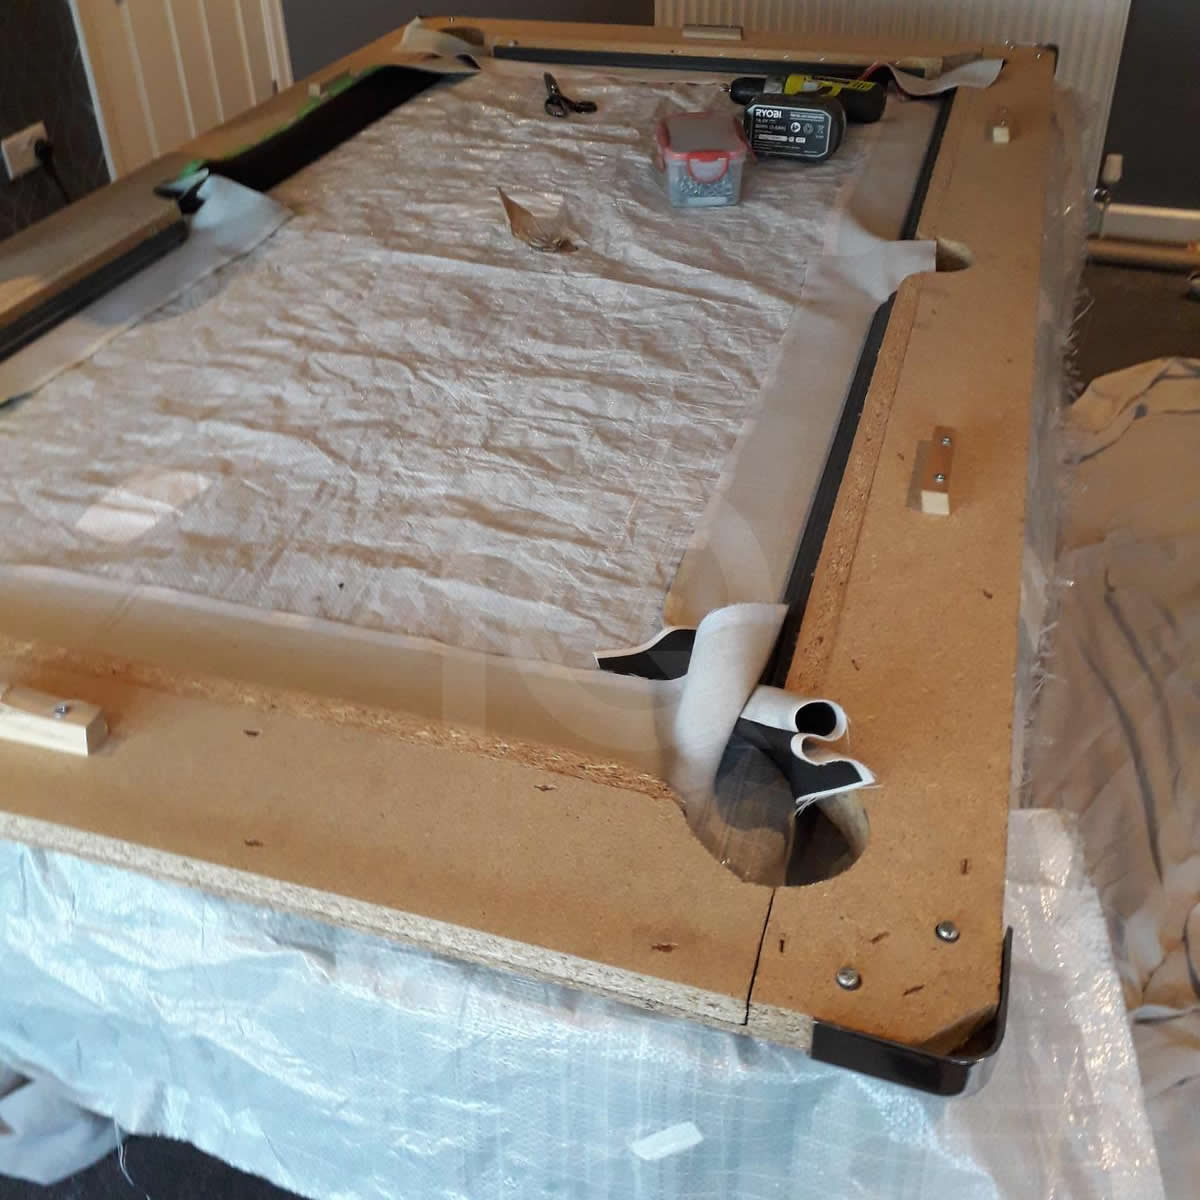 Installation of a Bee Custom Design Pool Table Cloth Before Image 2